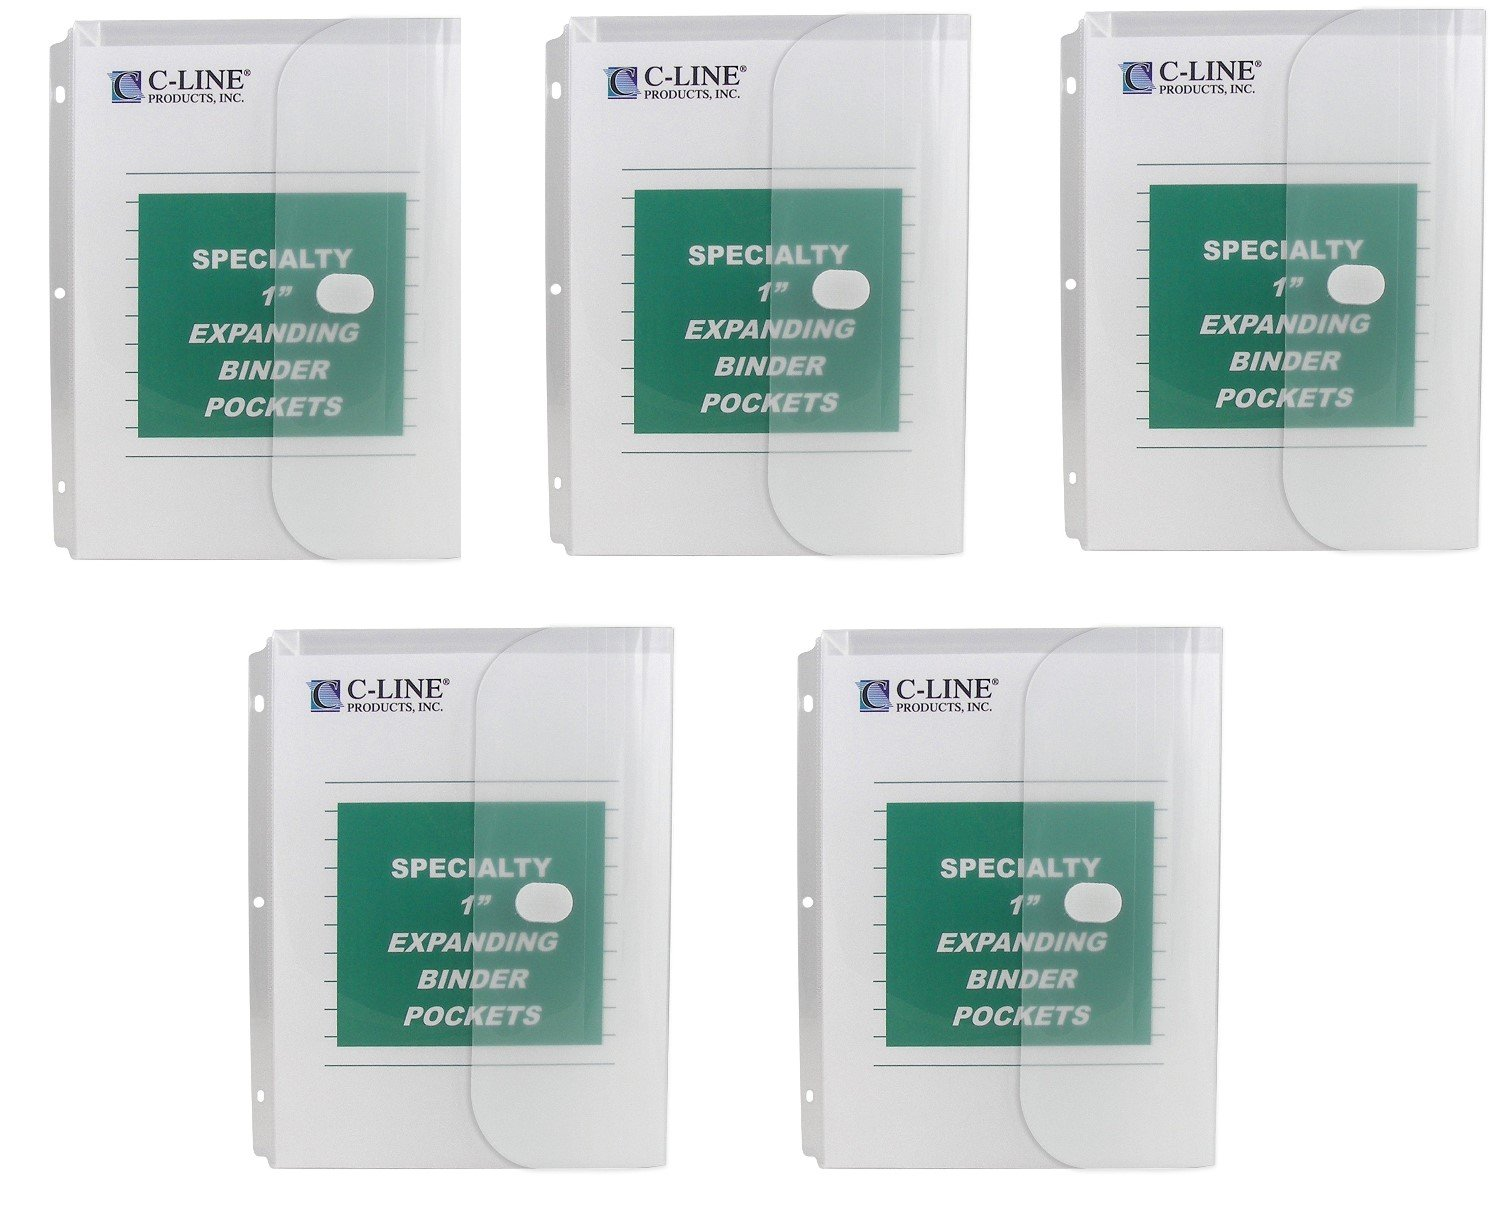 C-Line Biodegradable Acid-Free Poly Binder Pocket with 1-Inch Gusset, Side Loading, Clear, 10 Pockets per Pack, Sold As 5 Packs (33747)